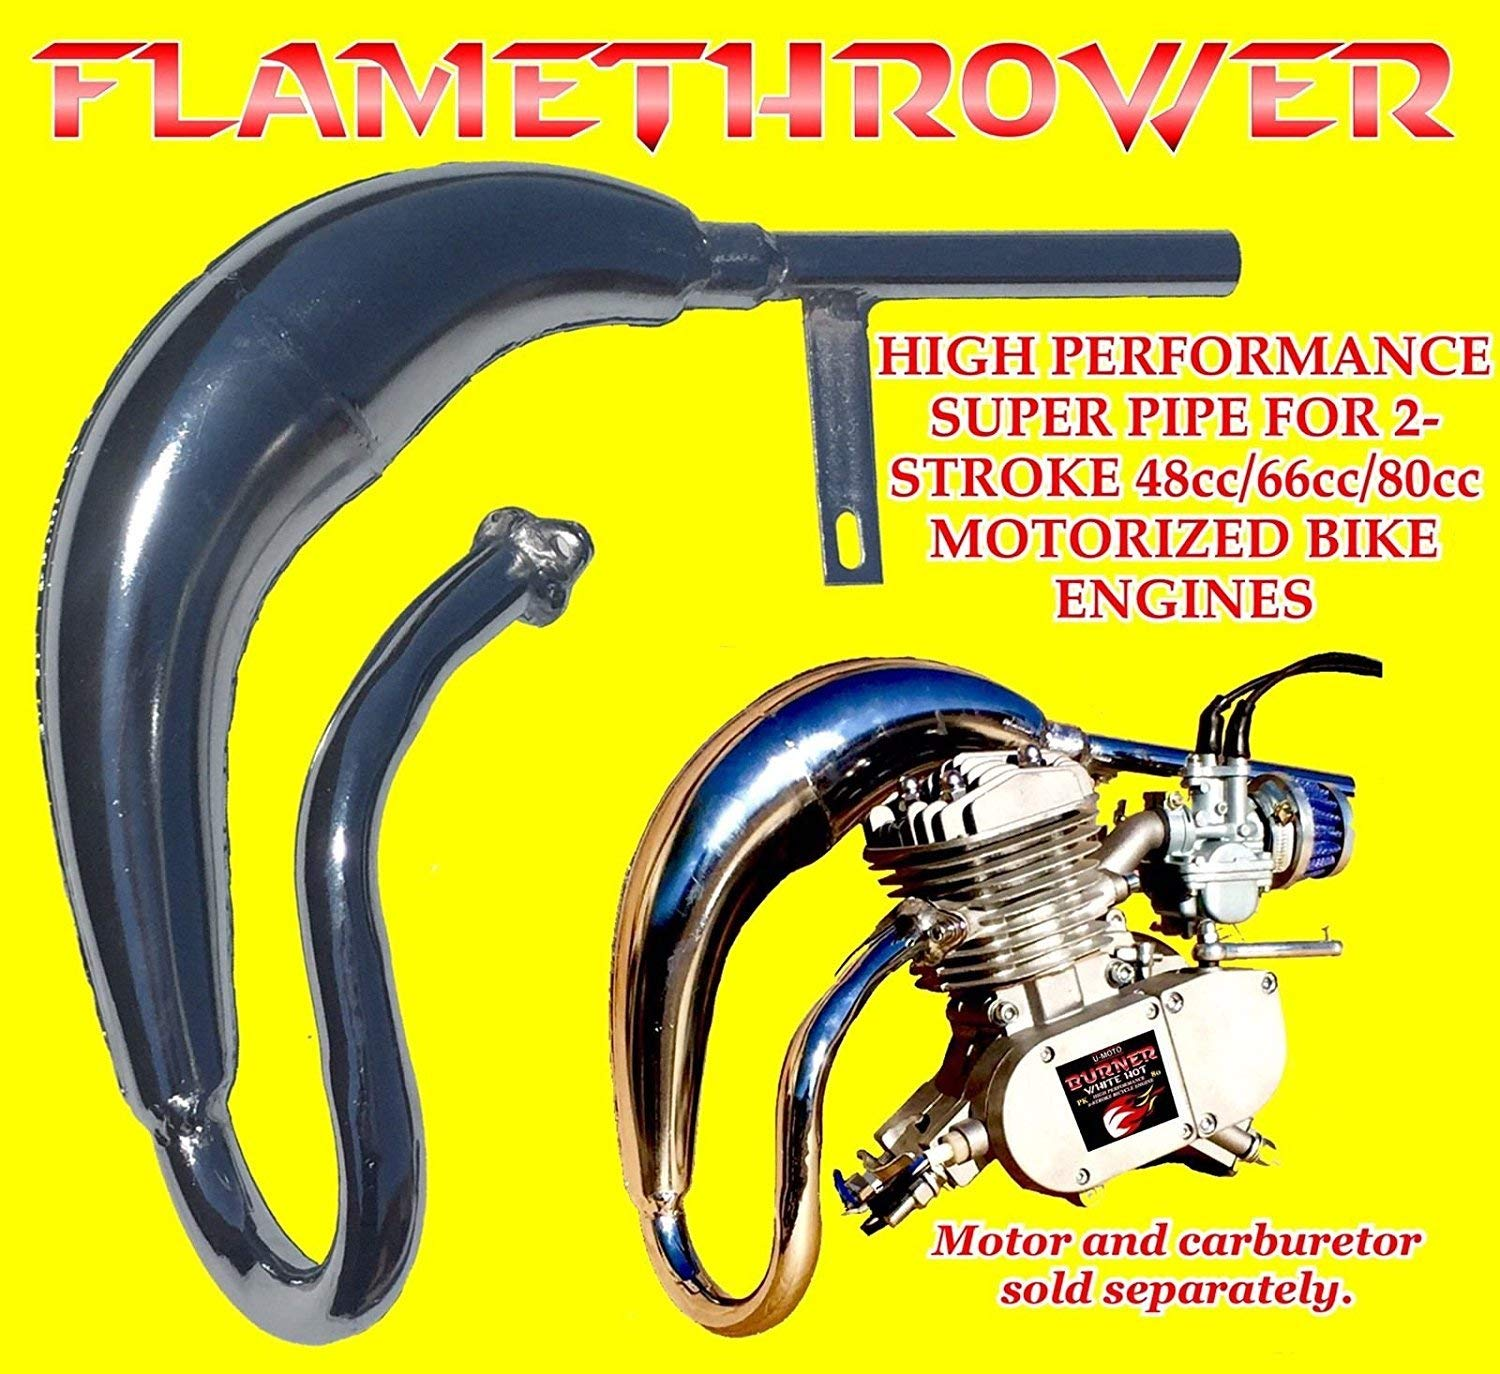 scooter HIGH PERFORMANCE EXHAUST FOR DIY 2-STROKE 66CC/80CC COMPLETE MOTORIZED BIKE KITS